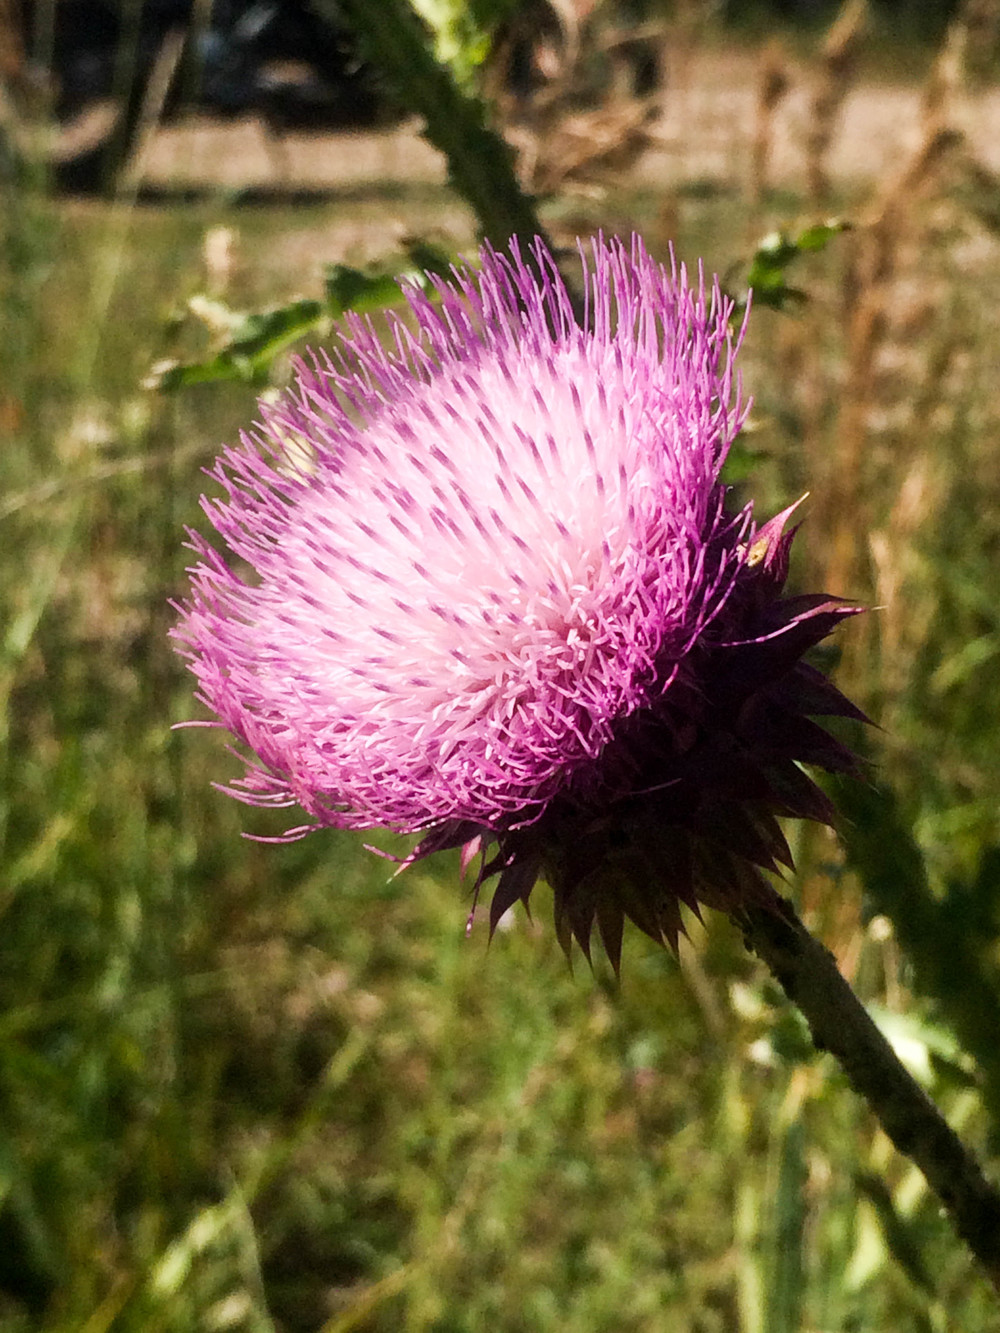 Canadian Thistle in bloom